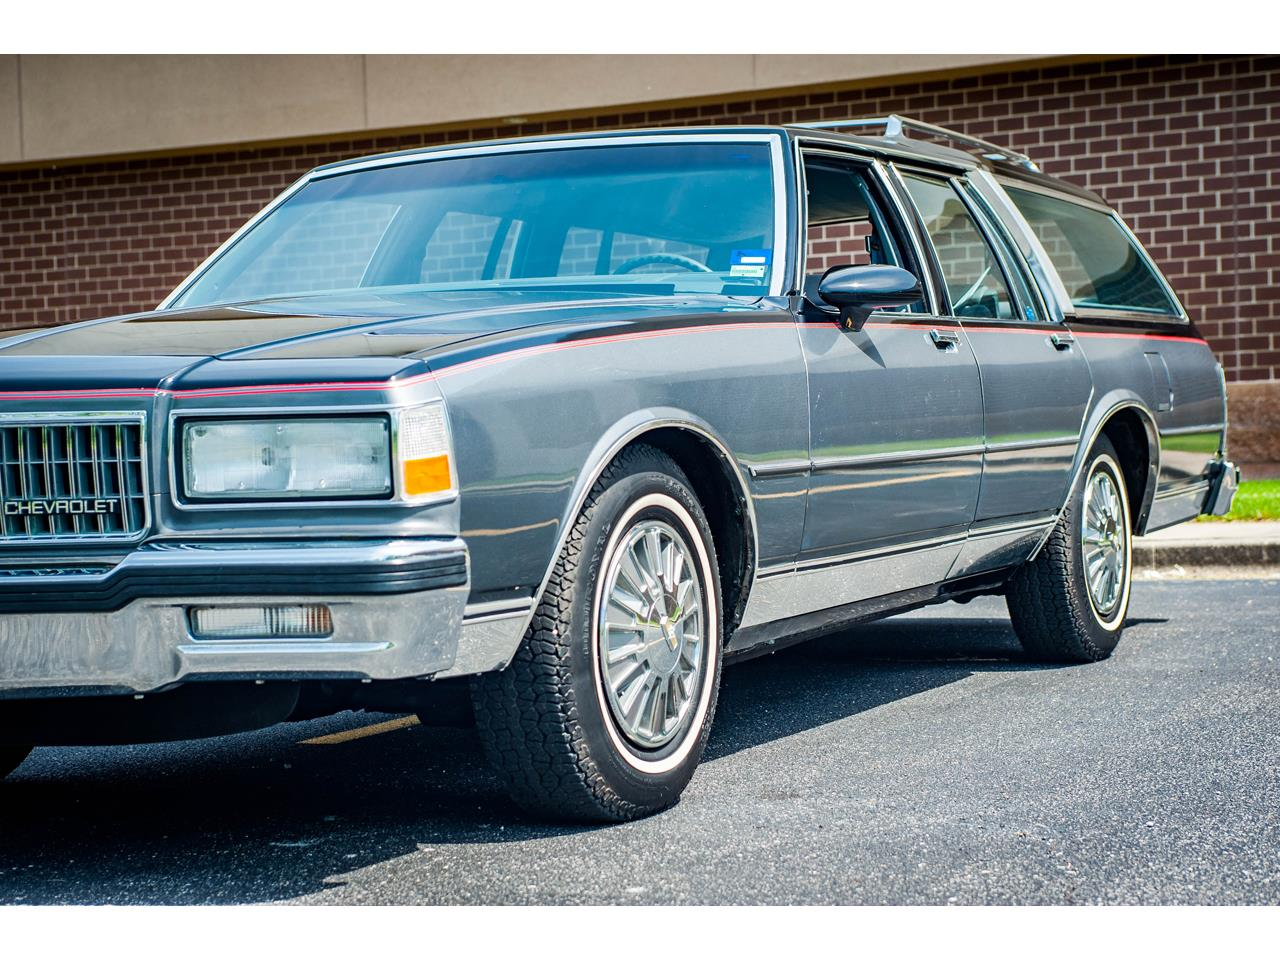 Large Picture of '89 Chevrolet Caprice - $17,995.00 - QB9K